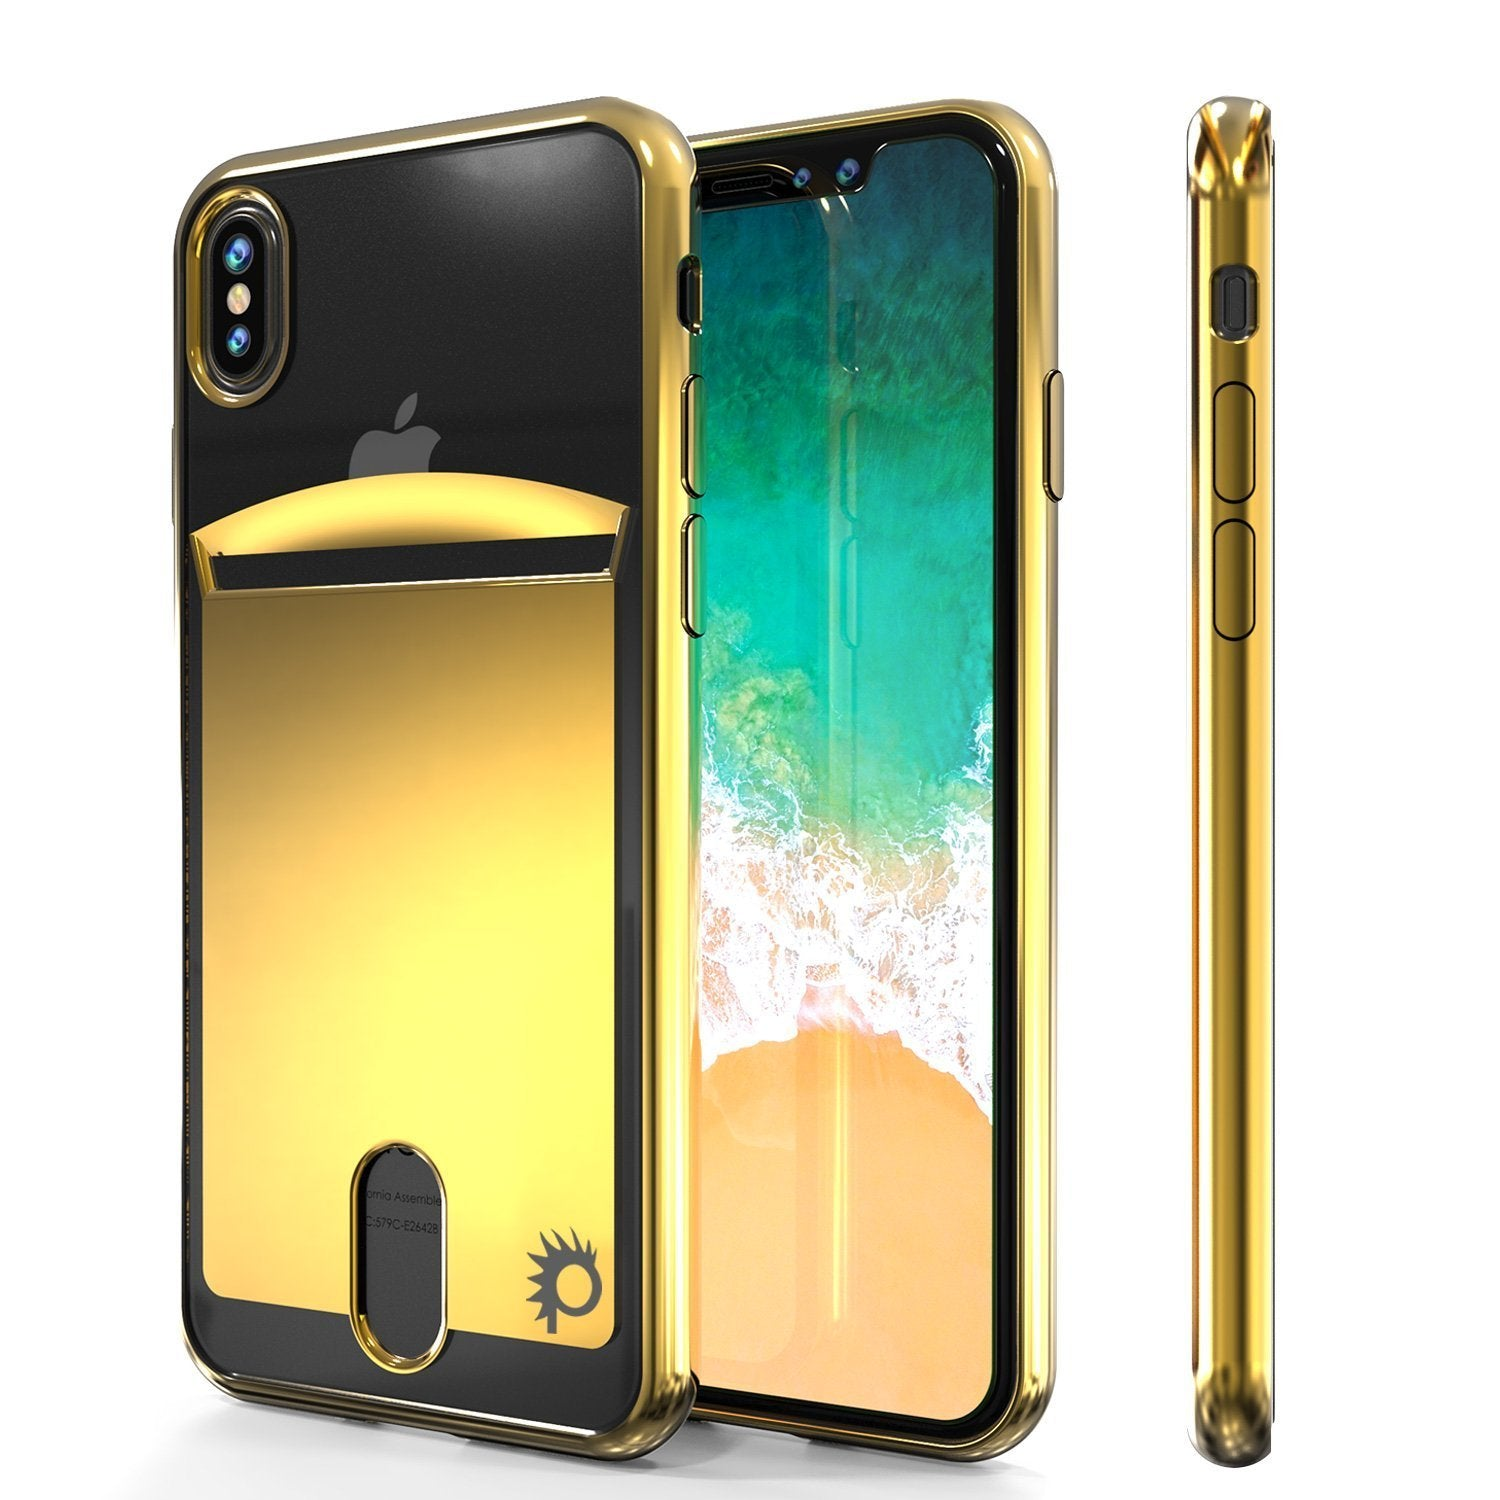 iPhone X Case, PUNKcase [LUCID Series] Slim Fit Protective Dual Layer Armor Cover [Gold]